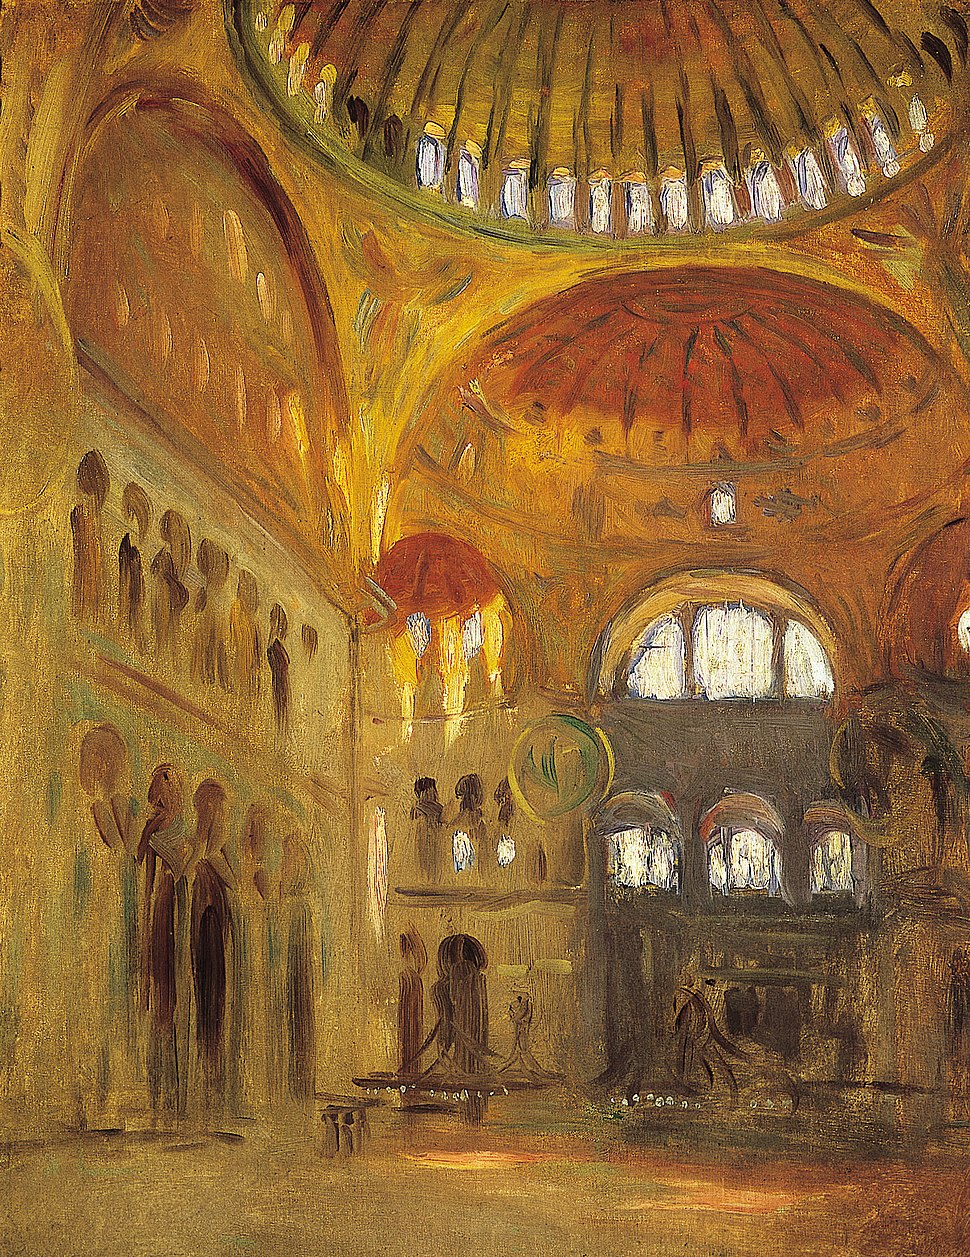 Interior of the Hagia Sophia